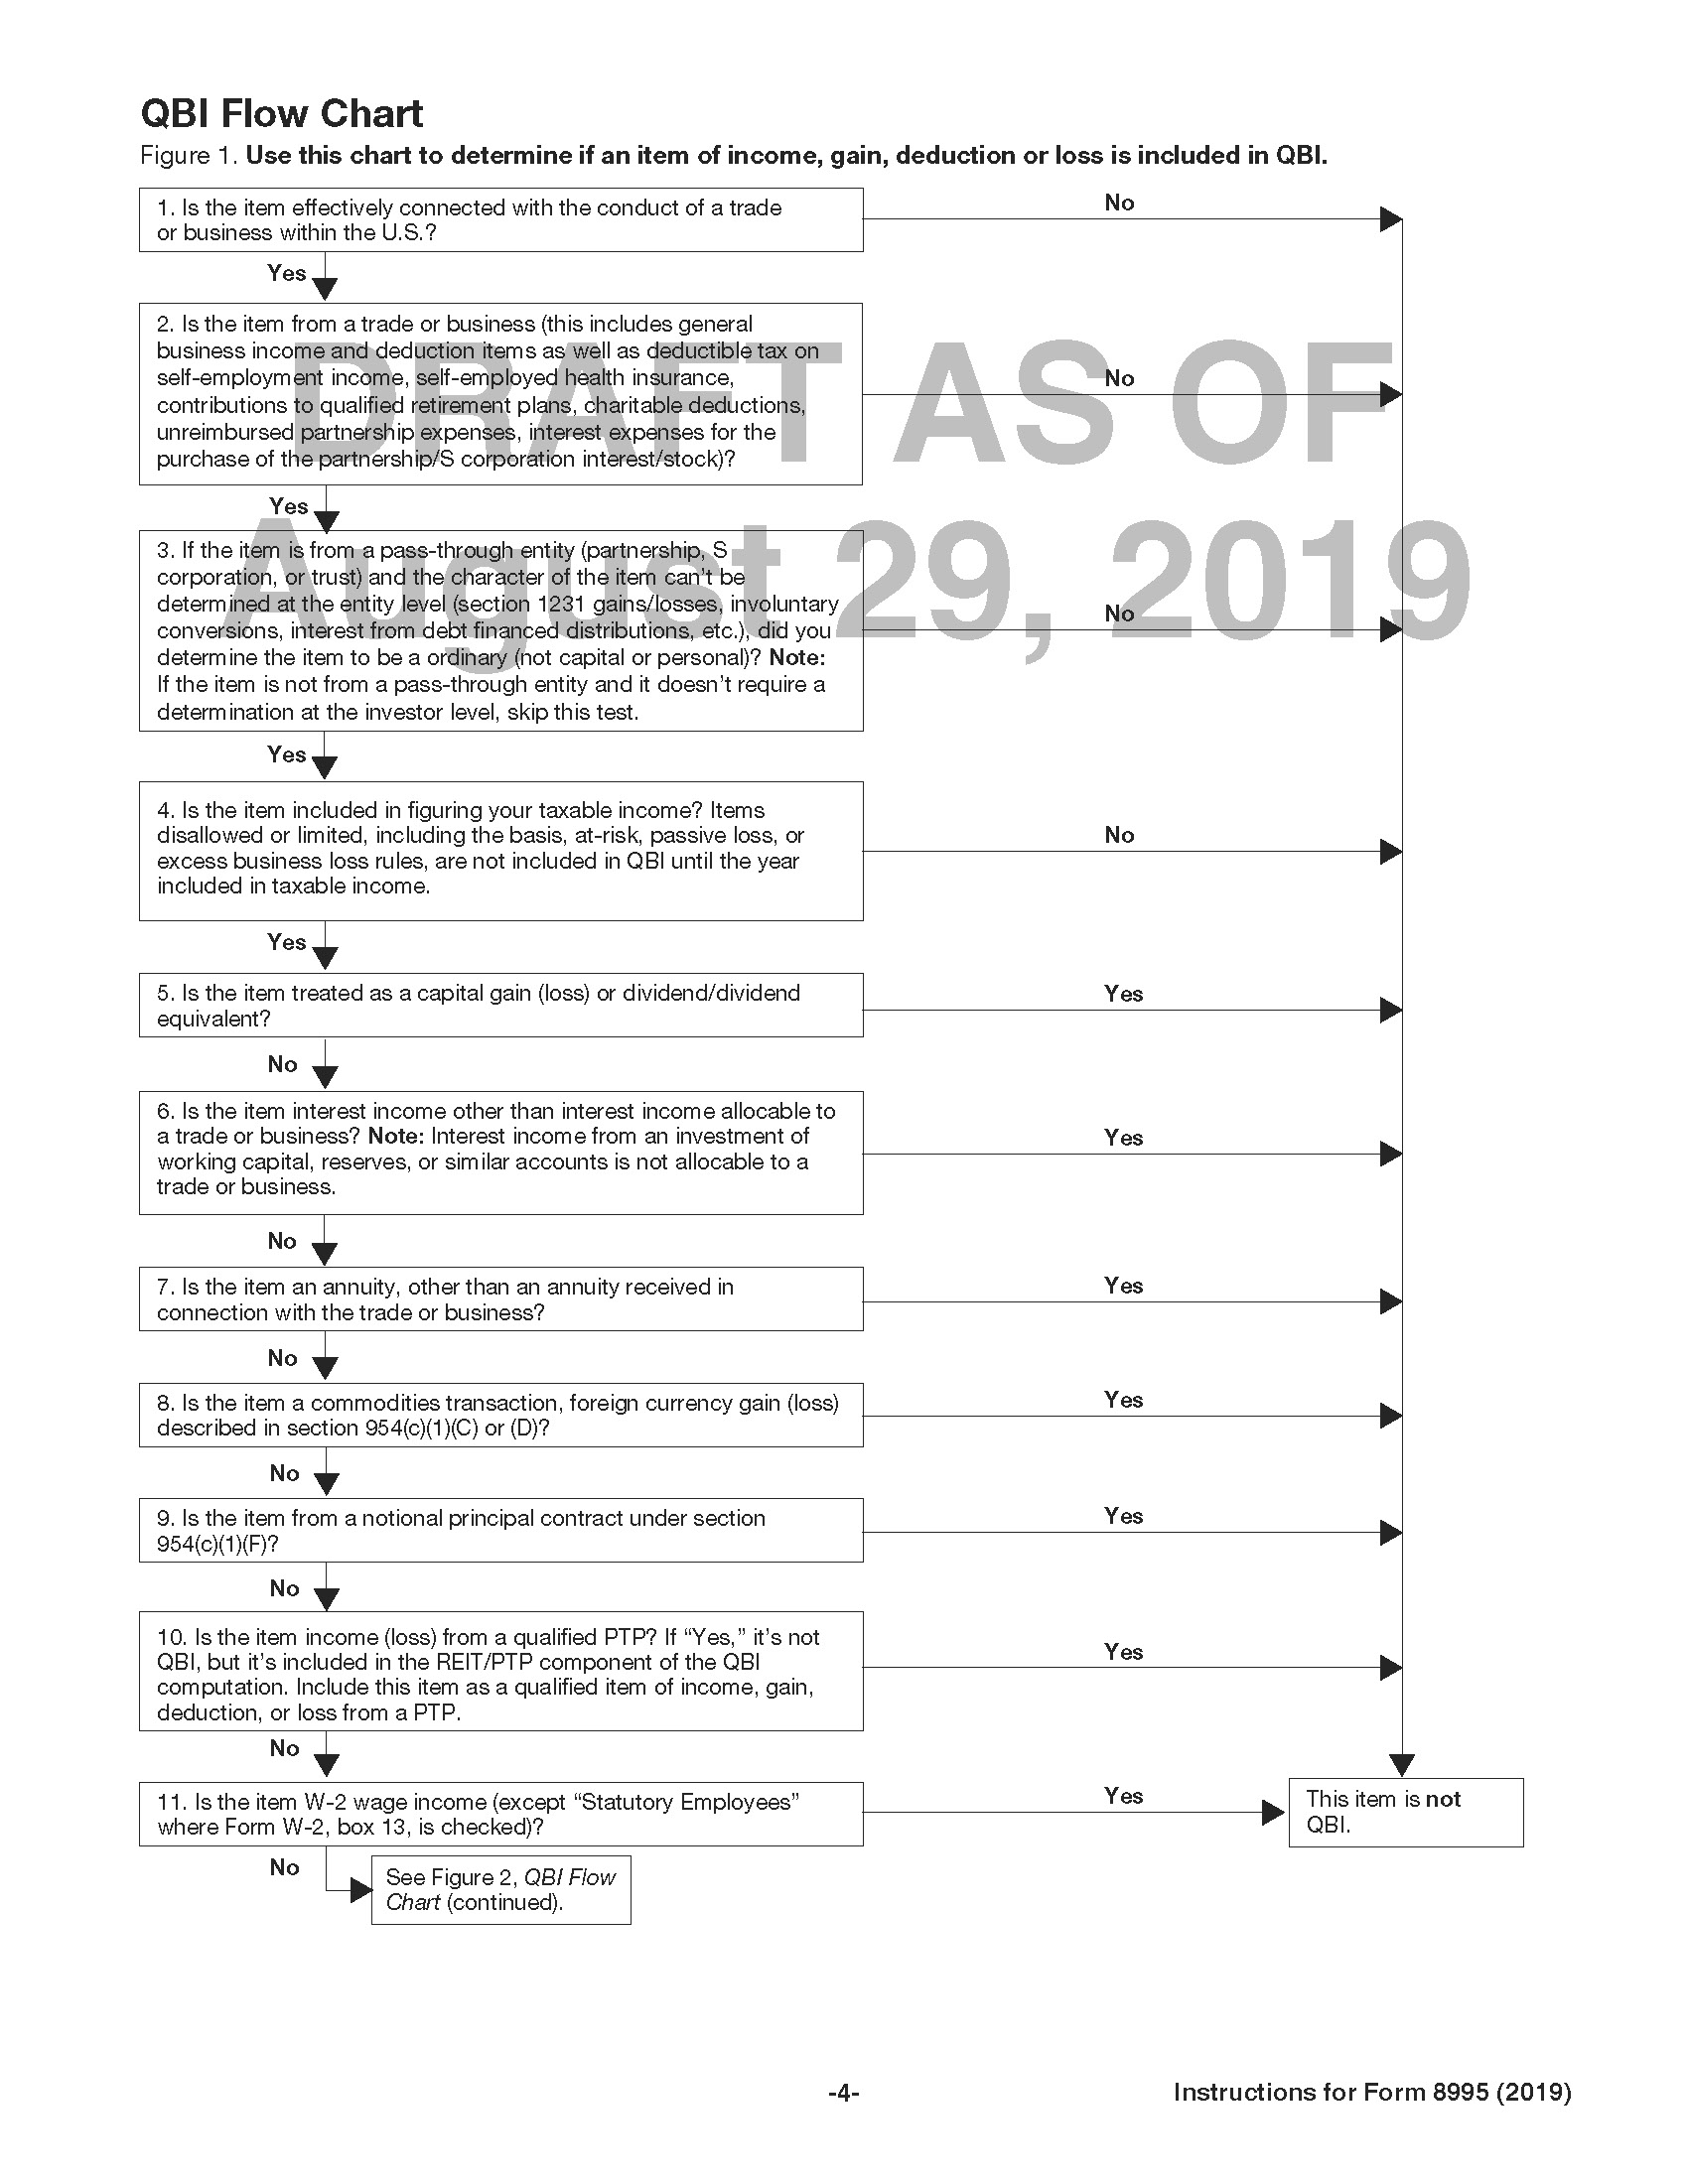 QBI Flowchart from 2019 Draft 8995 Instructions, First Page